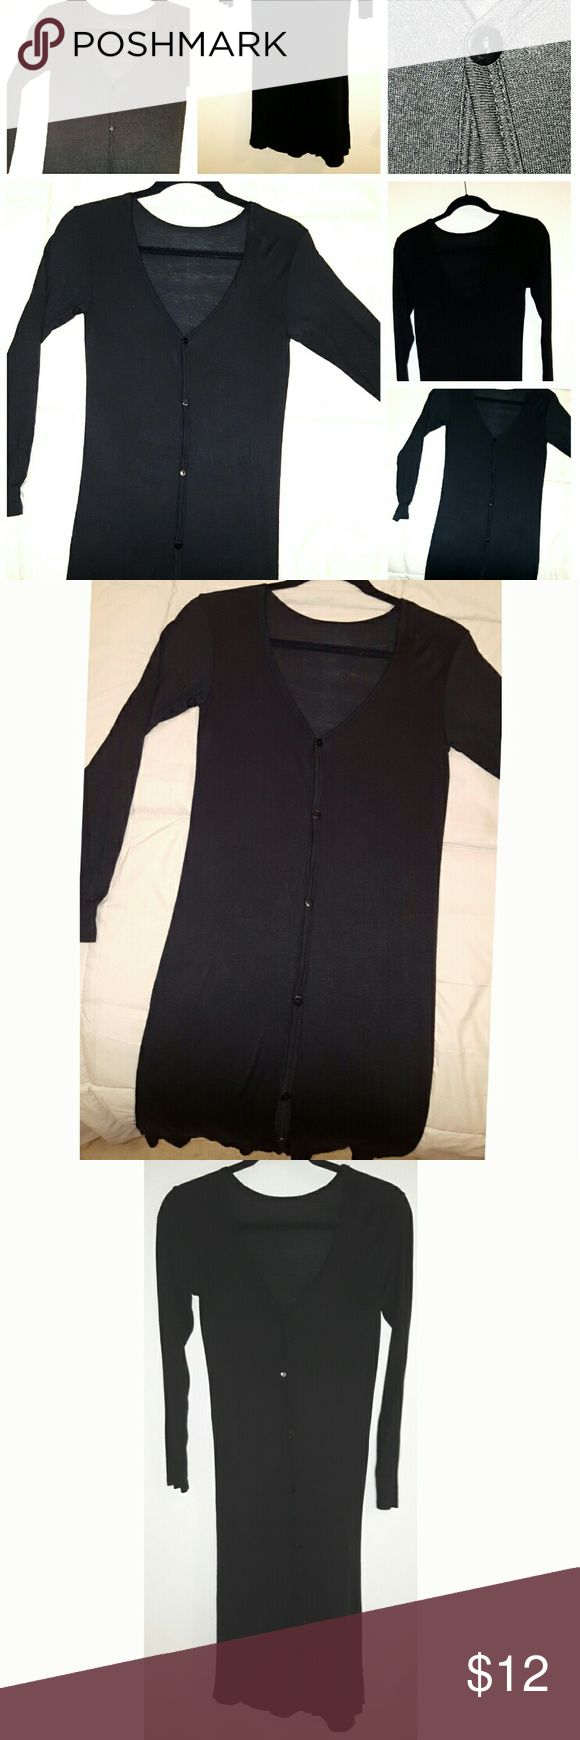 Black, Longline, Button Down Cardigan Long Black Cardigan Sweater Sweaters Cardigans